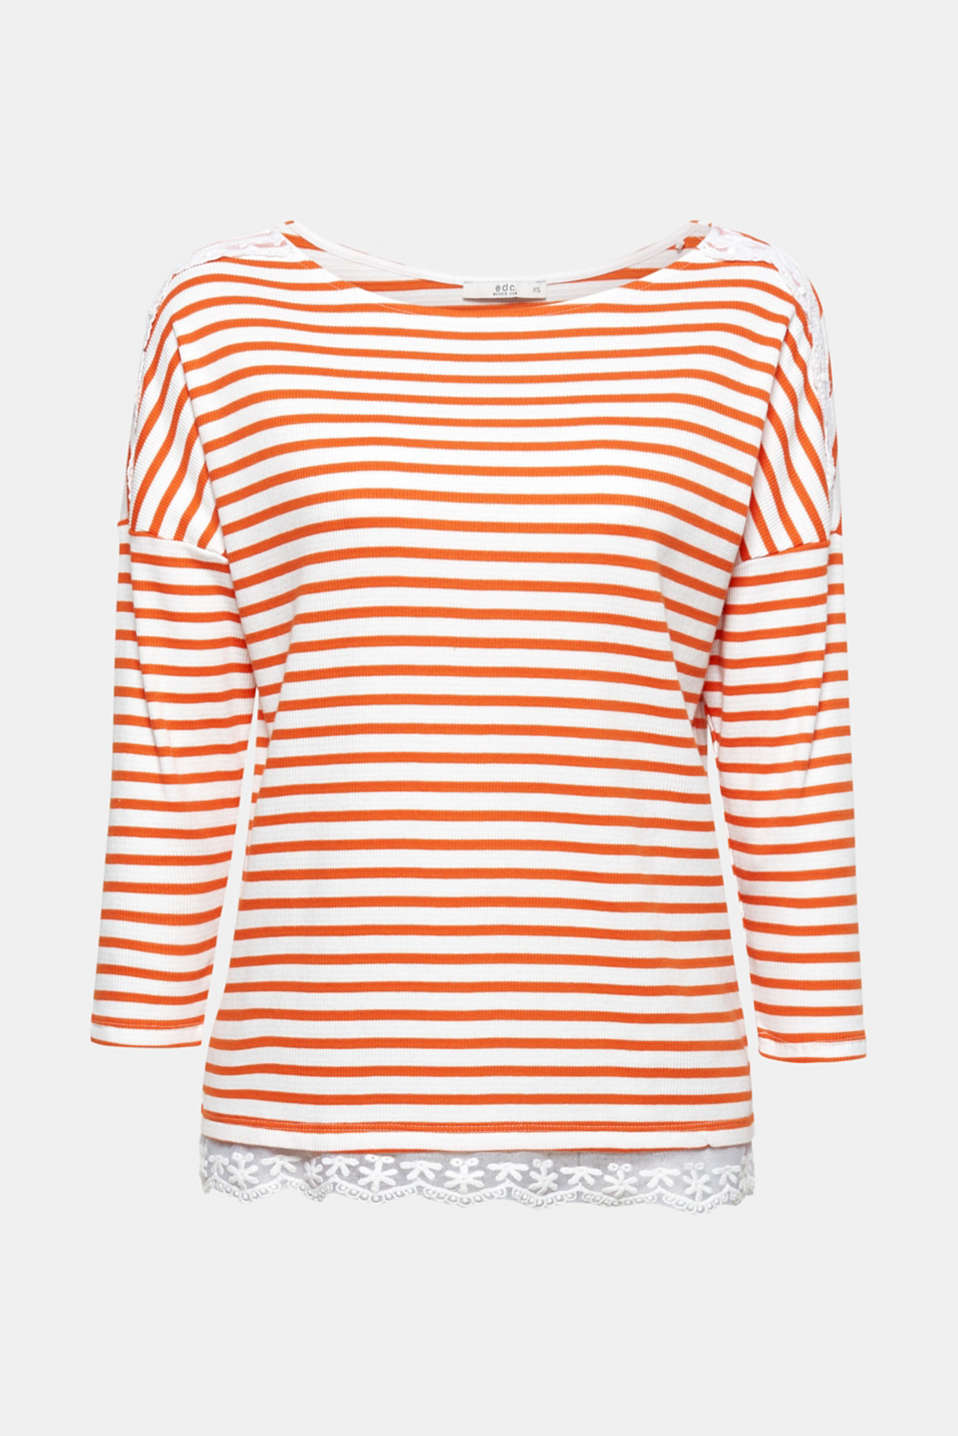 The interplay of striped textured jersey and feminine lace gives this long sleeve top a new nautical trend look!